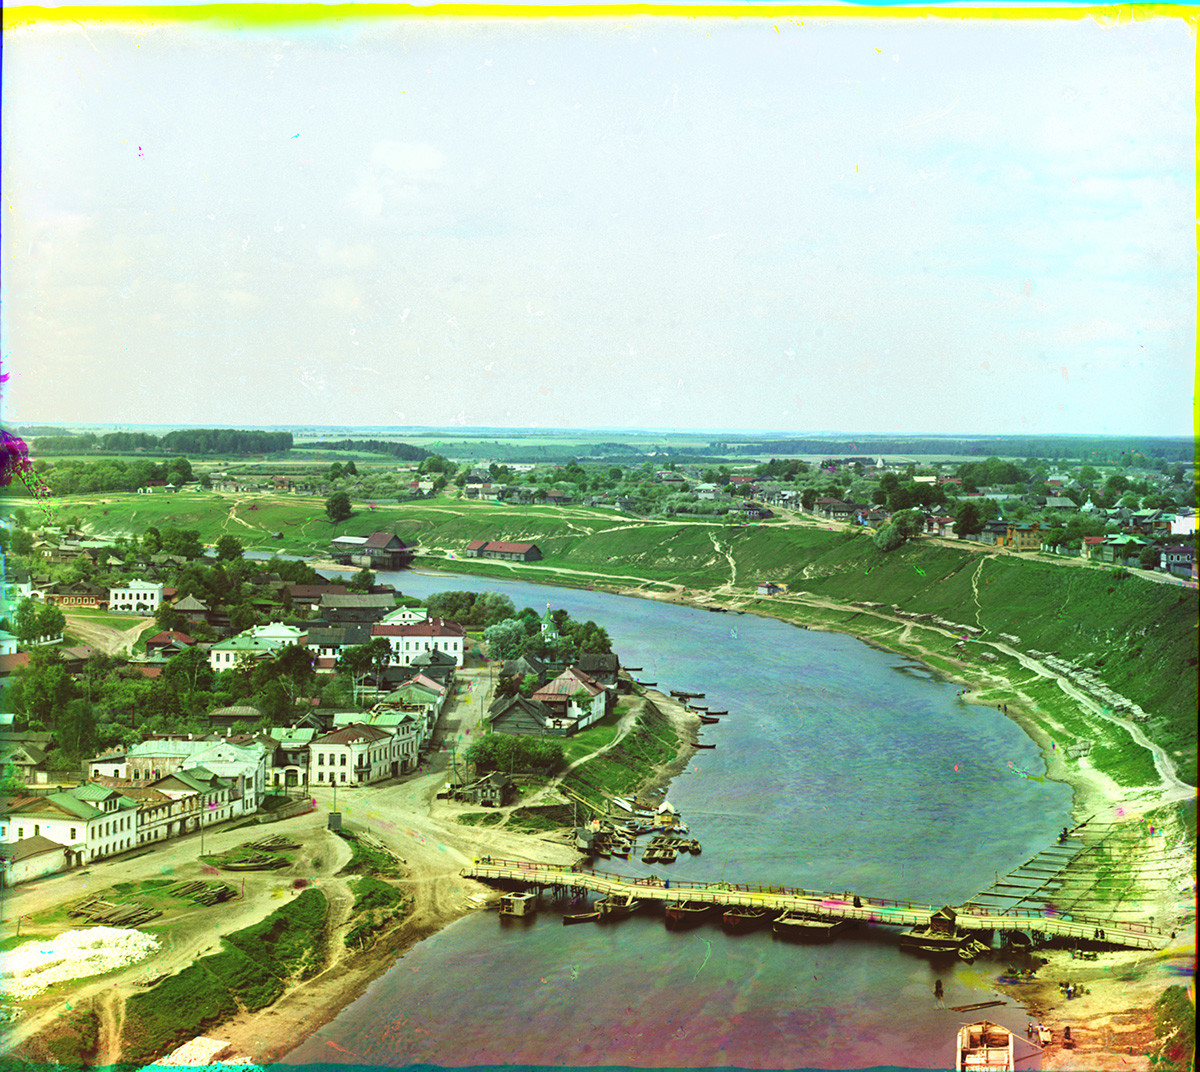 View west up Volga River from Dormition Cathedral bell tower. Middle: Old wooden pontoon bridge with yellow, red & blue smudges indicating movement of horse during three exposures of Prokudin-Gorsky's negative. Left: Prince Dmitry Side. Summer 1910.